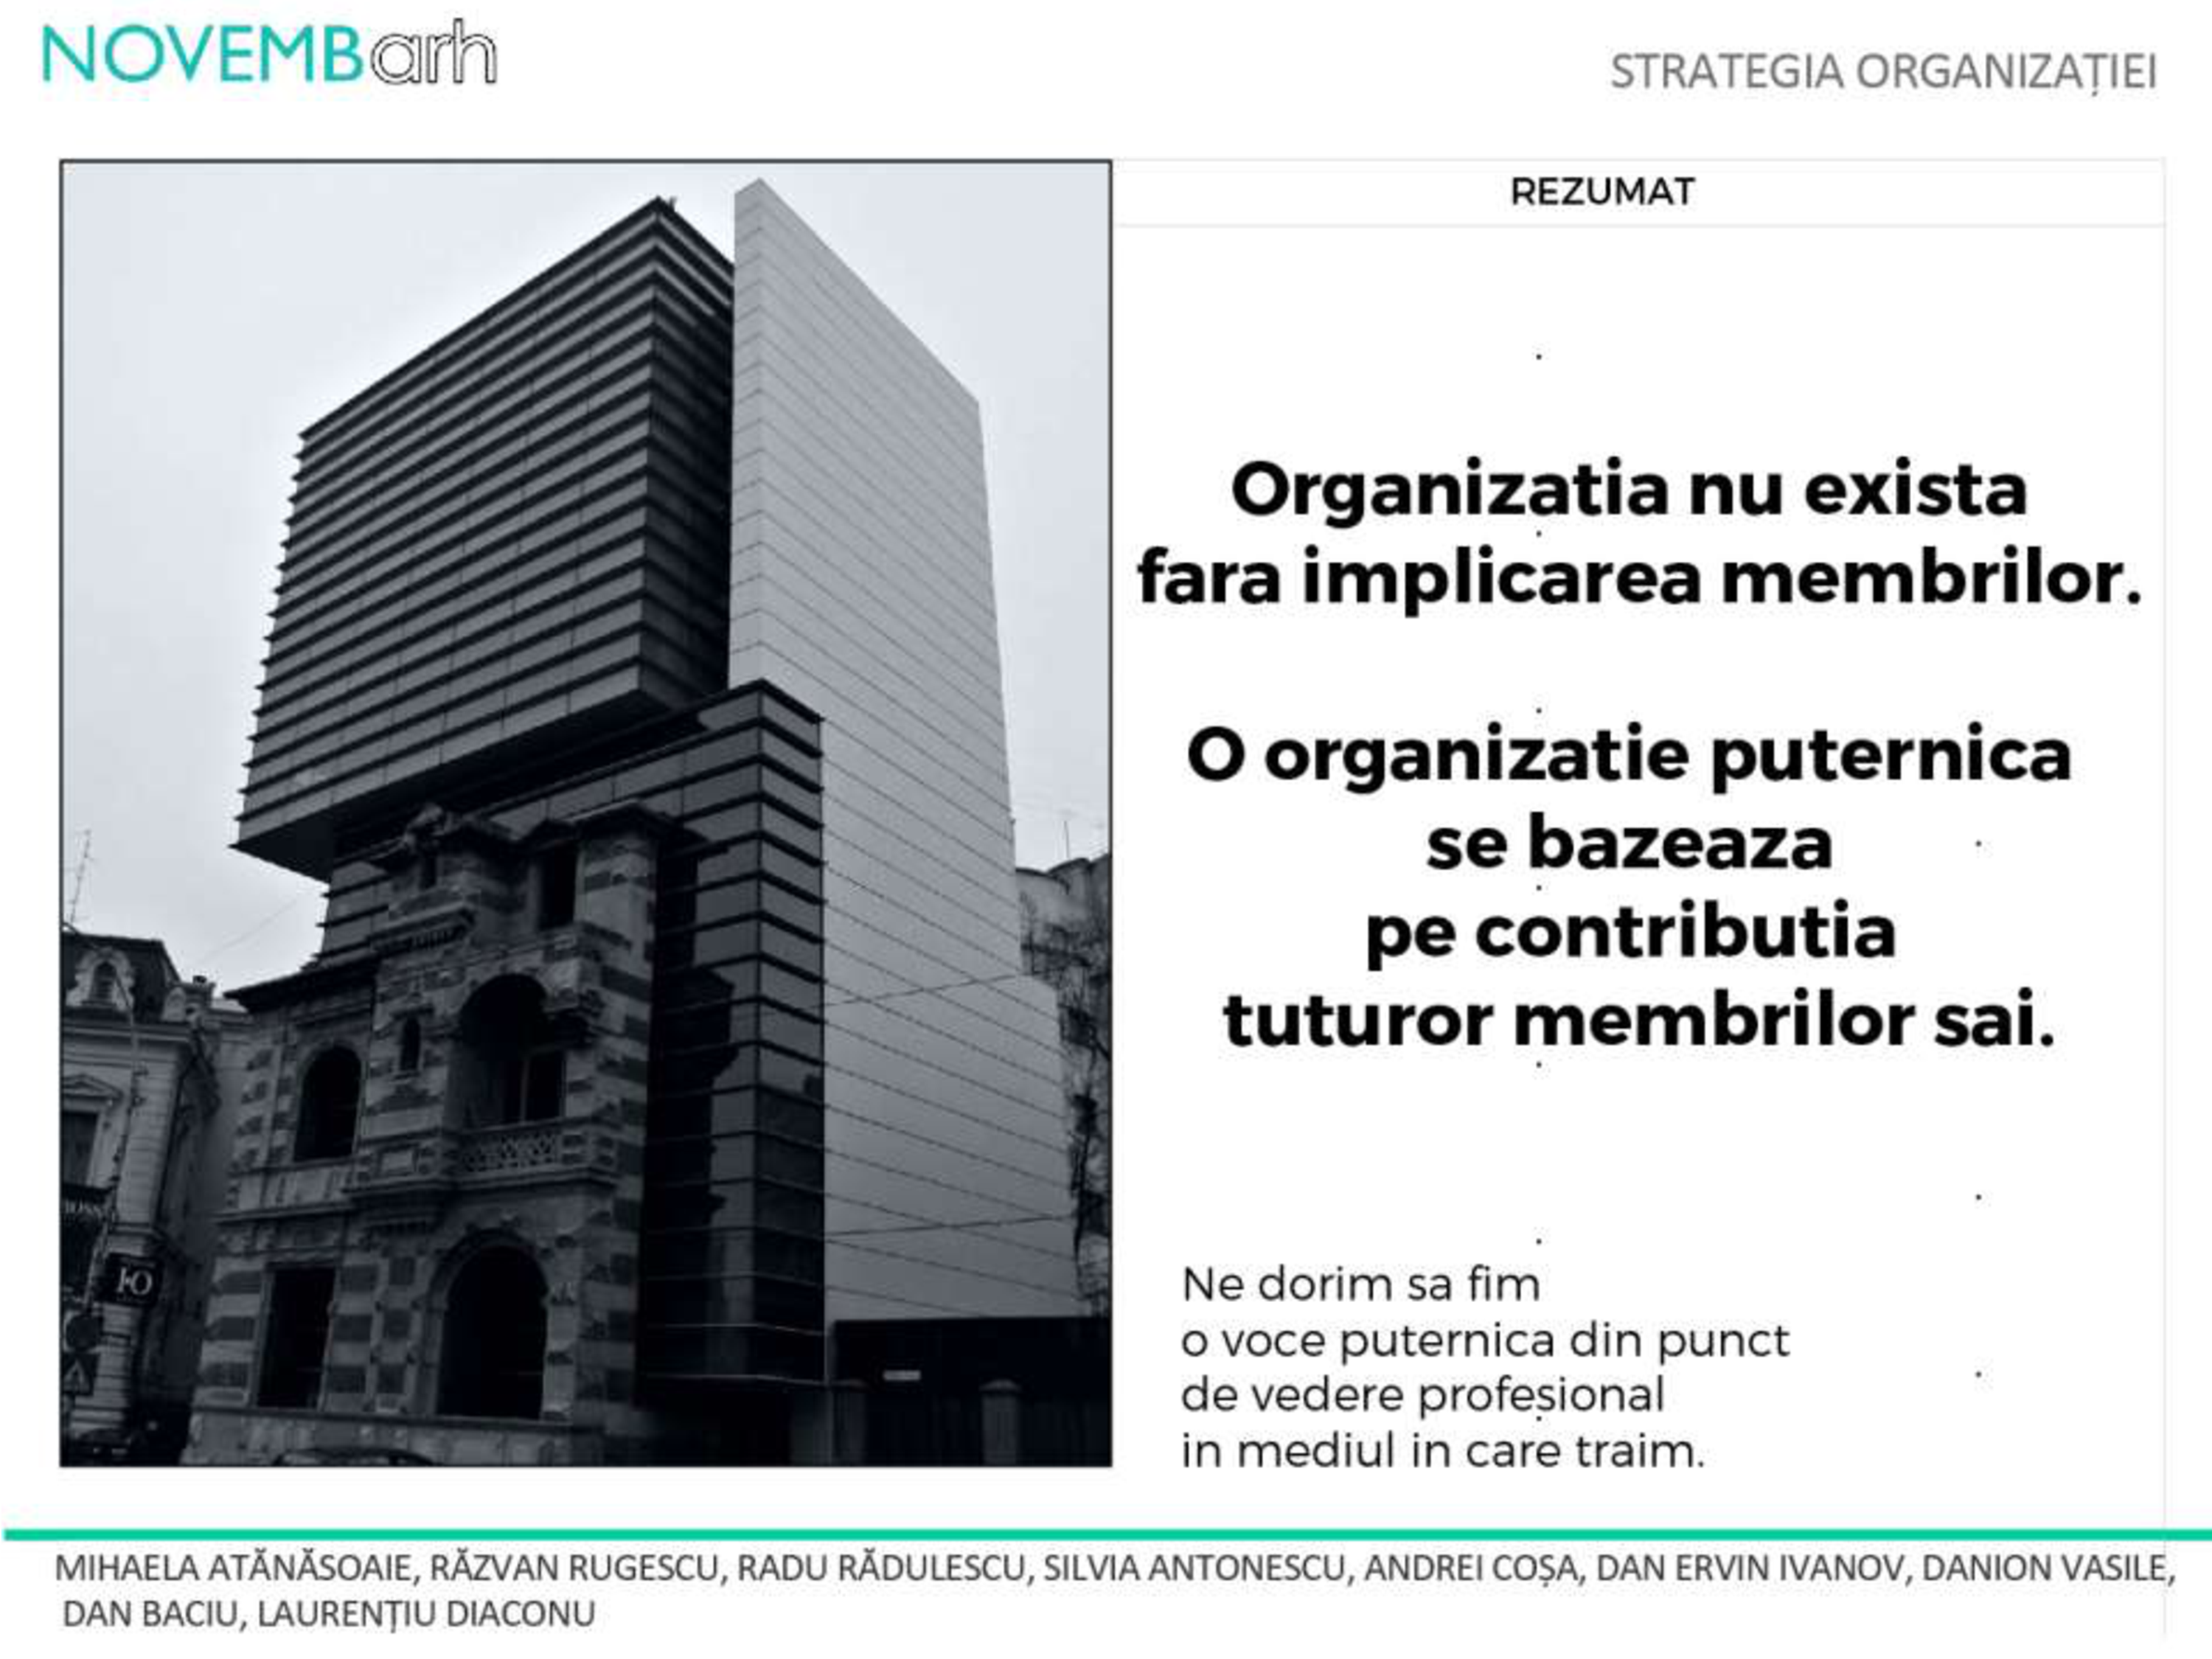 Pagina 10 - Strategia organizatiei